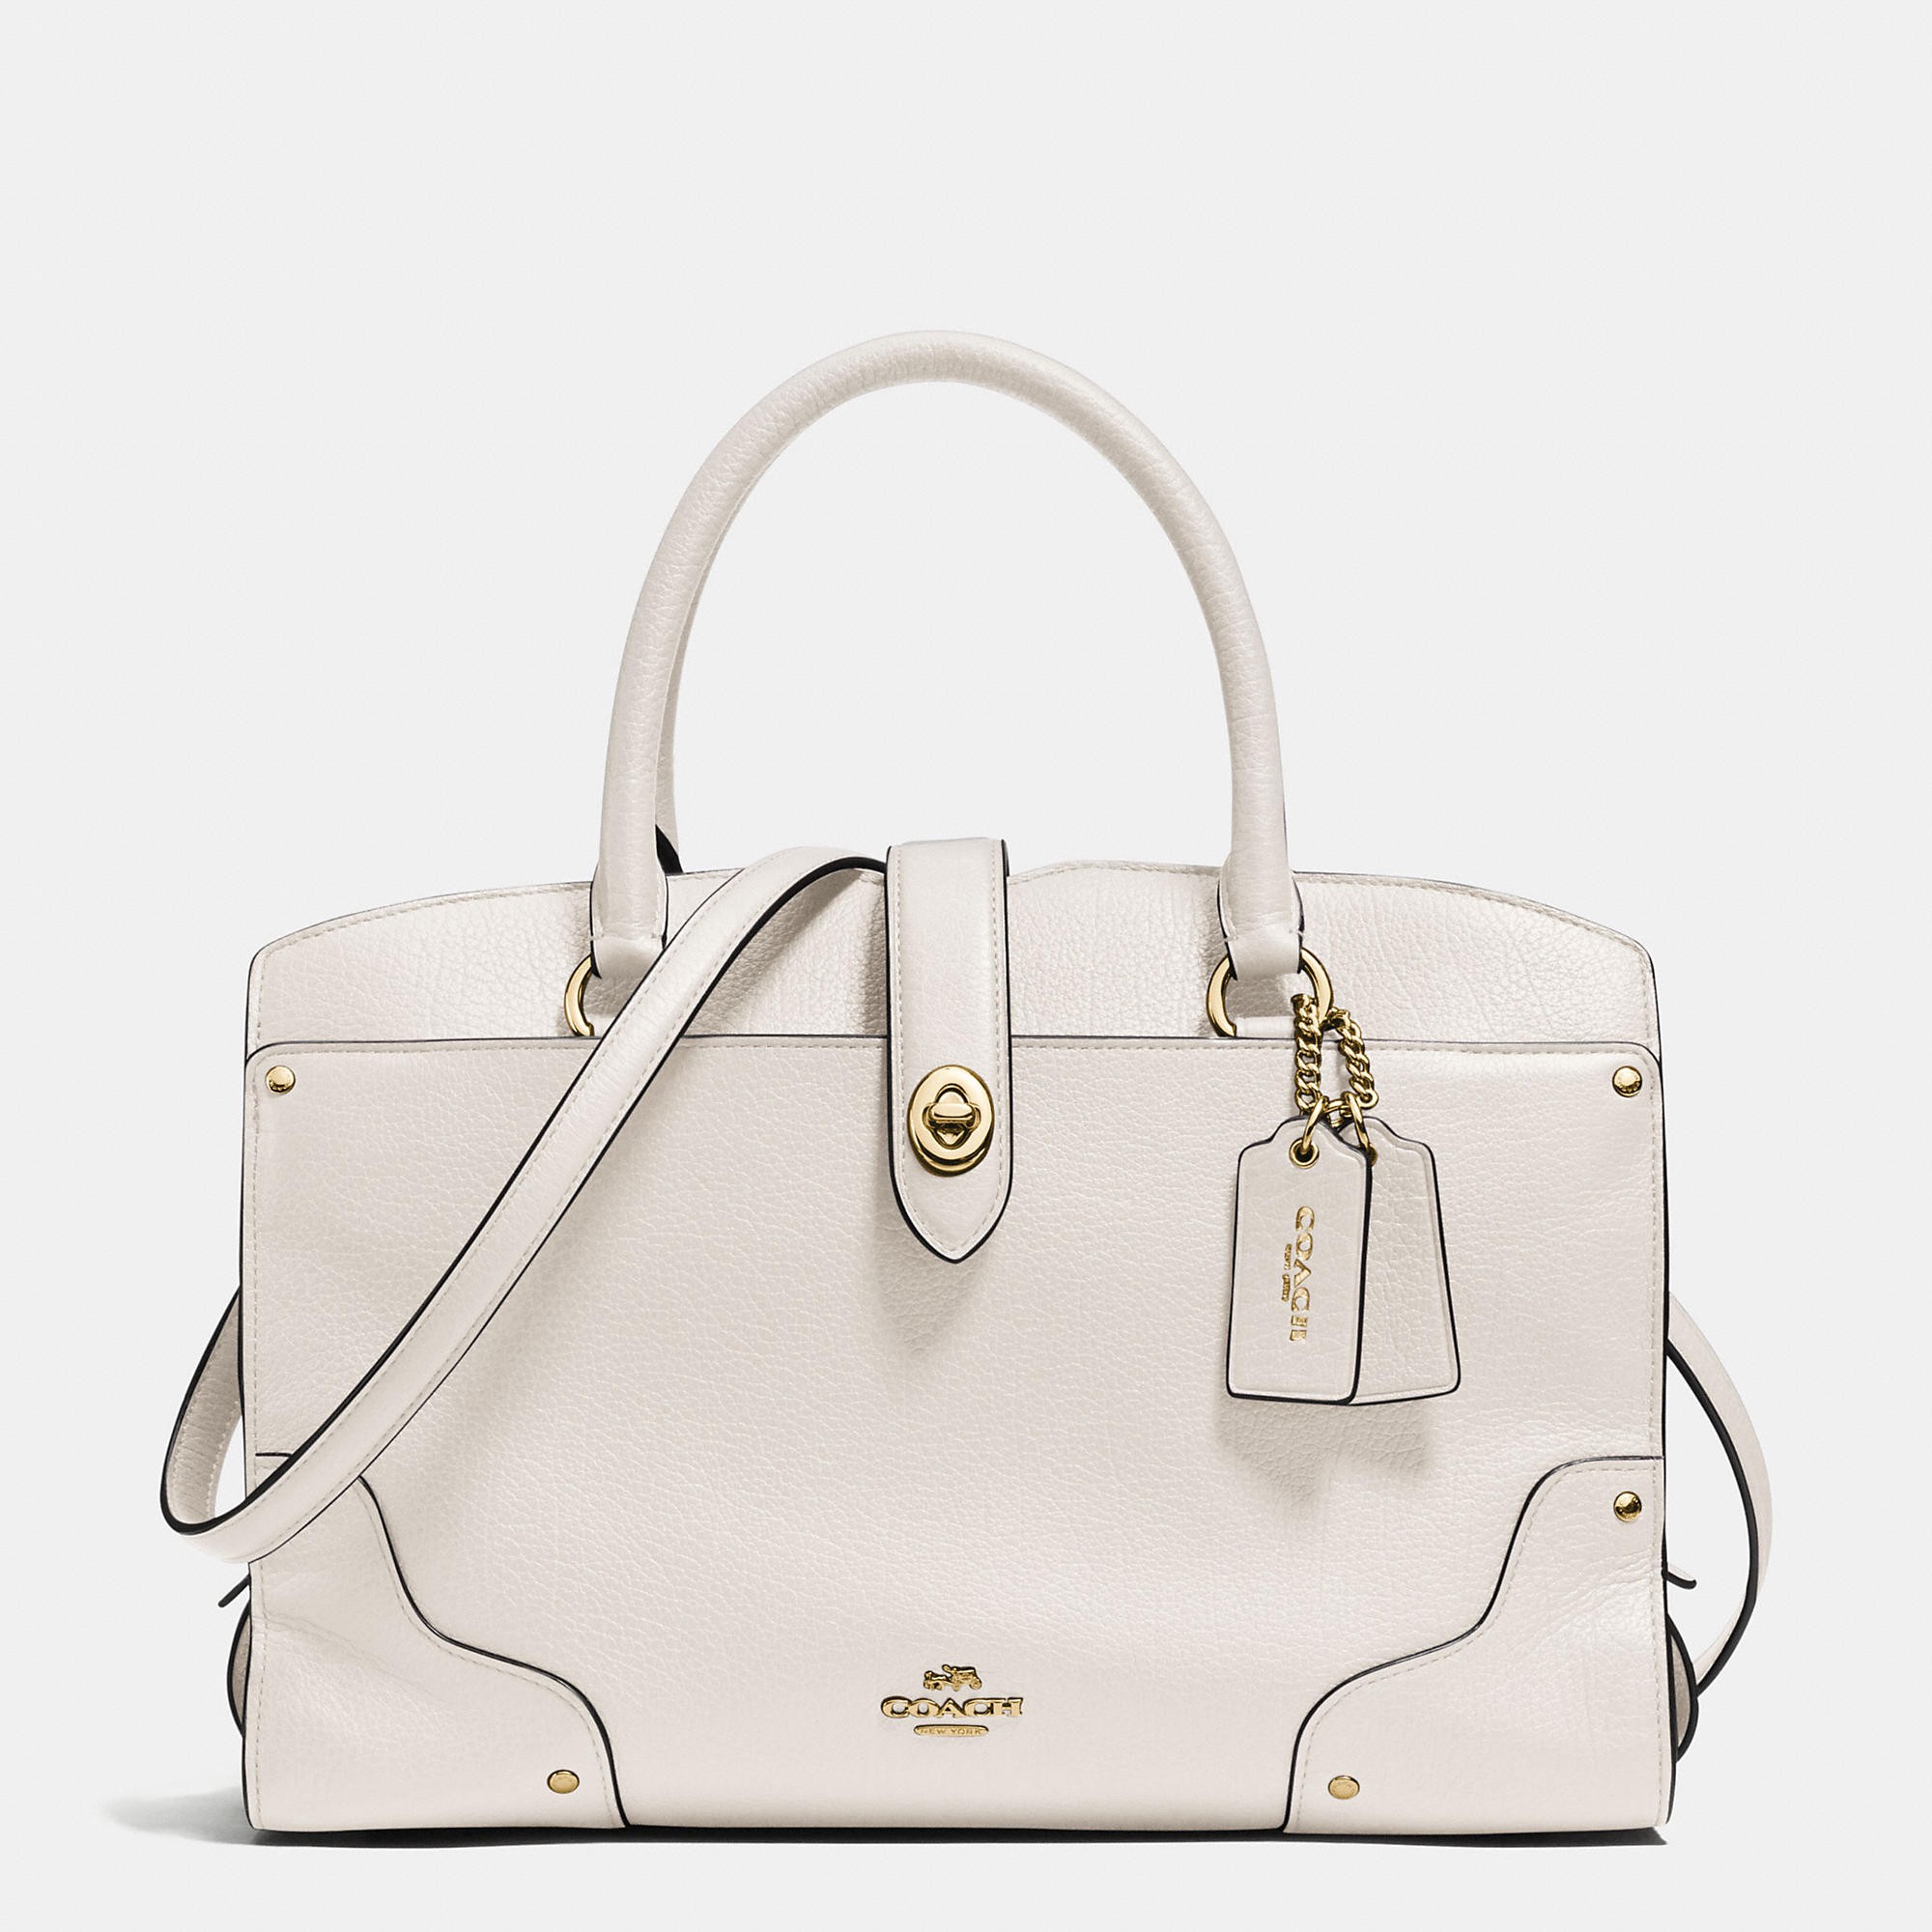 COACH Mercer Satchel 30 In Grain Leather at SPRING